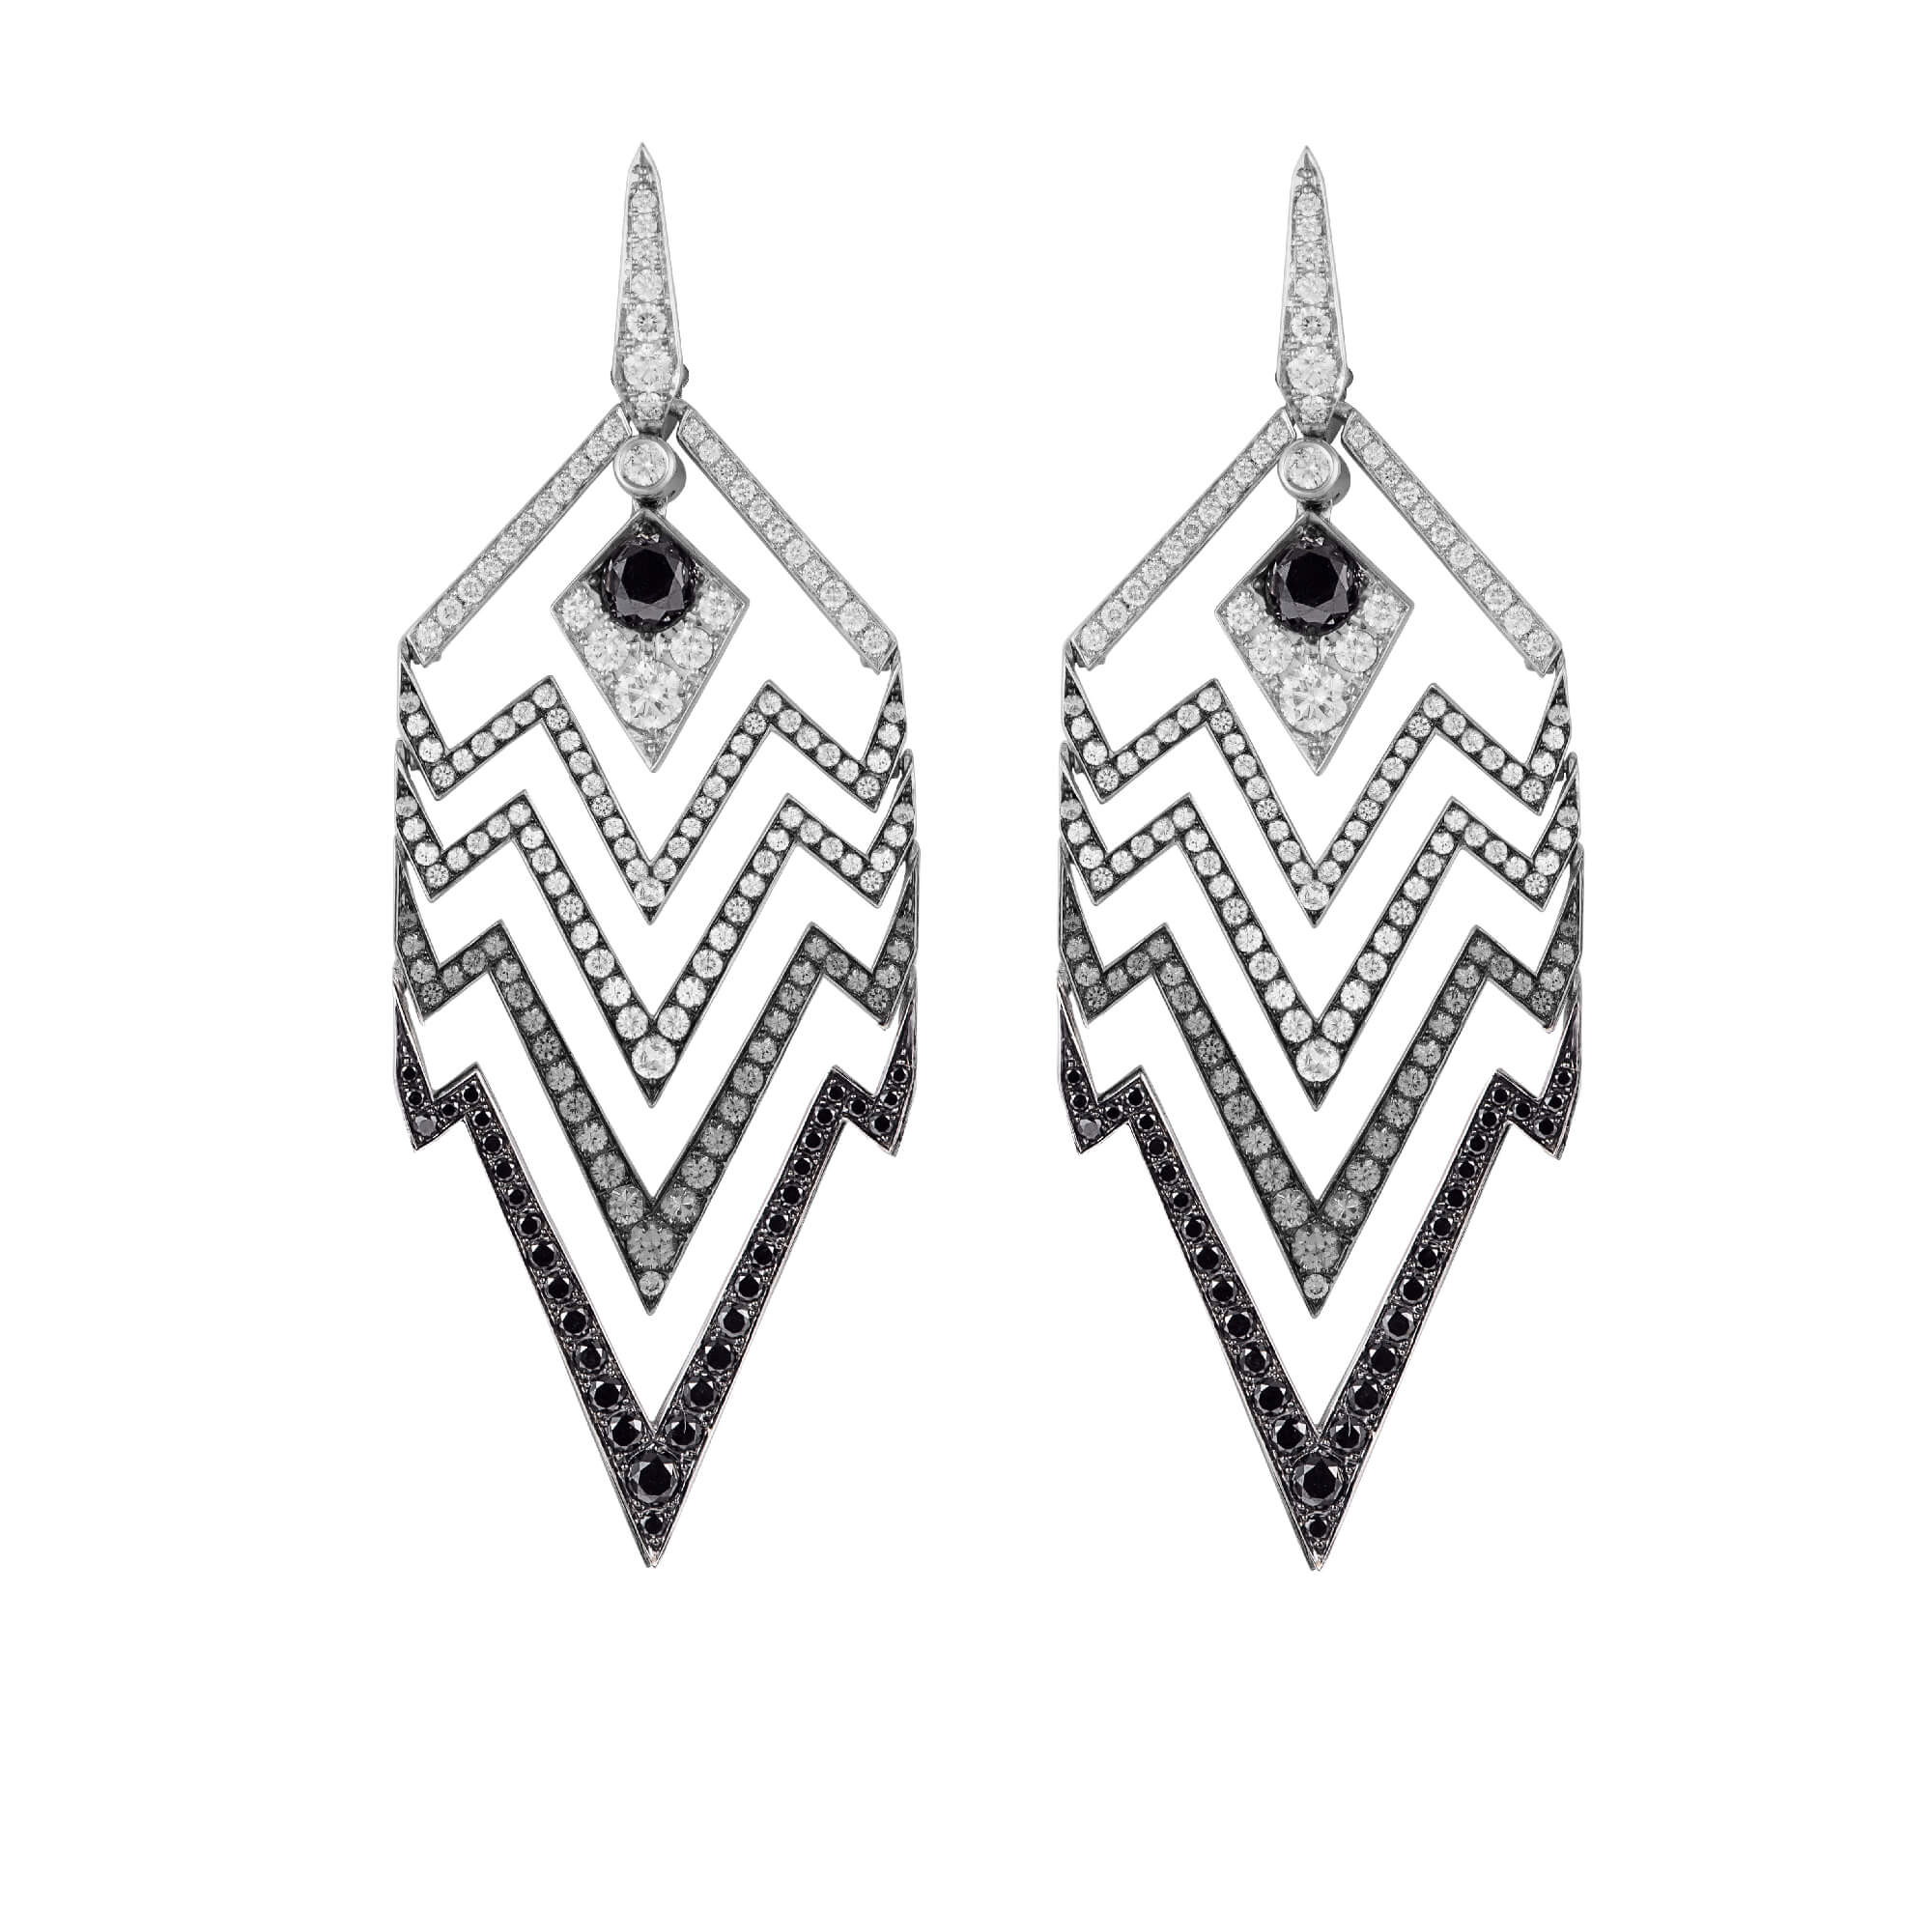 White Gold & Diamond Earrings | Lady Stardust